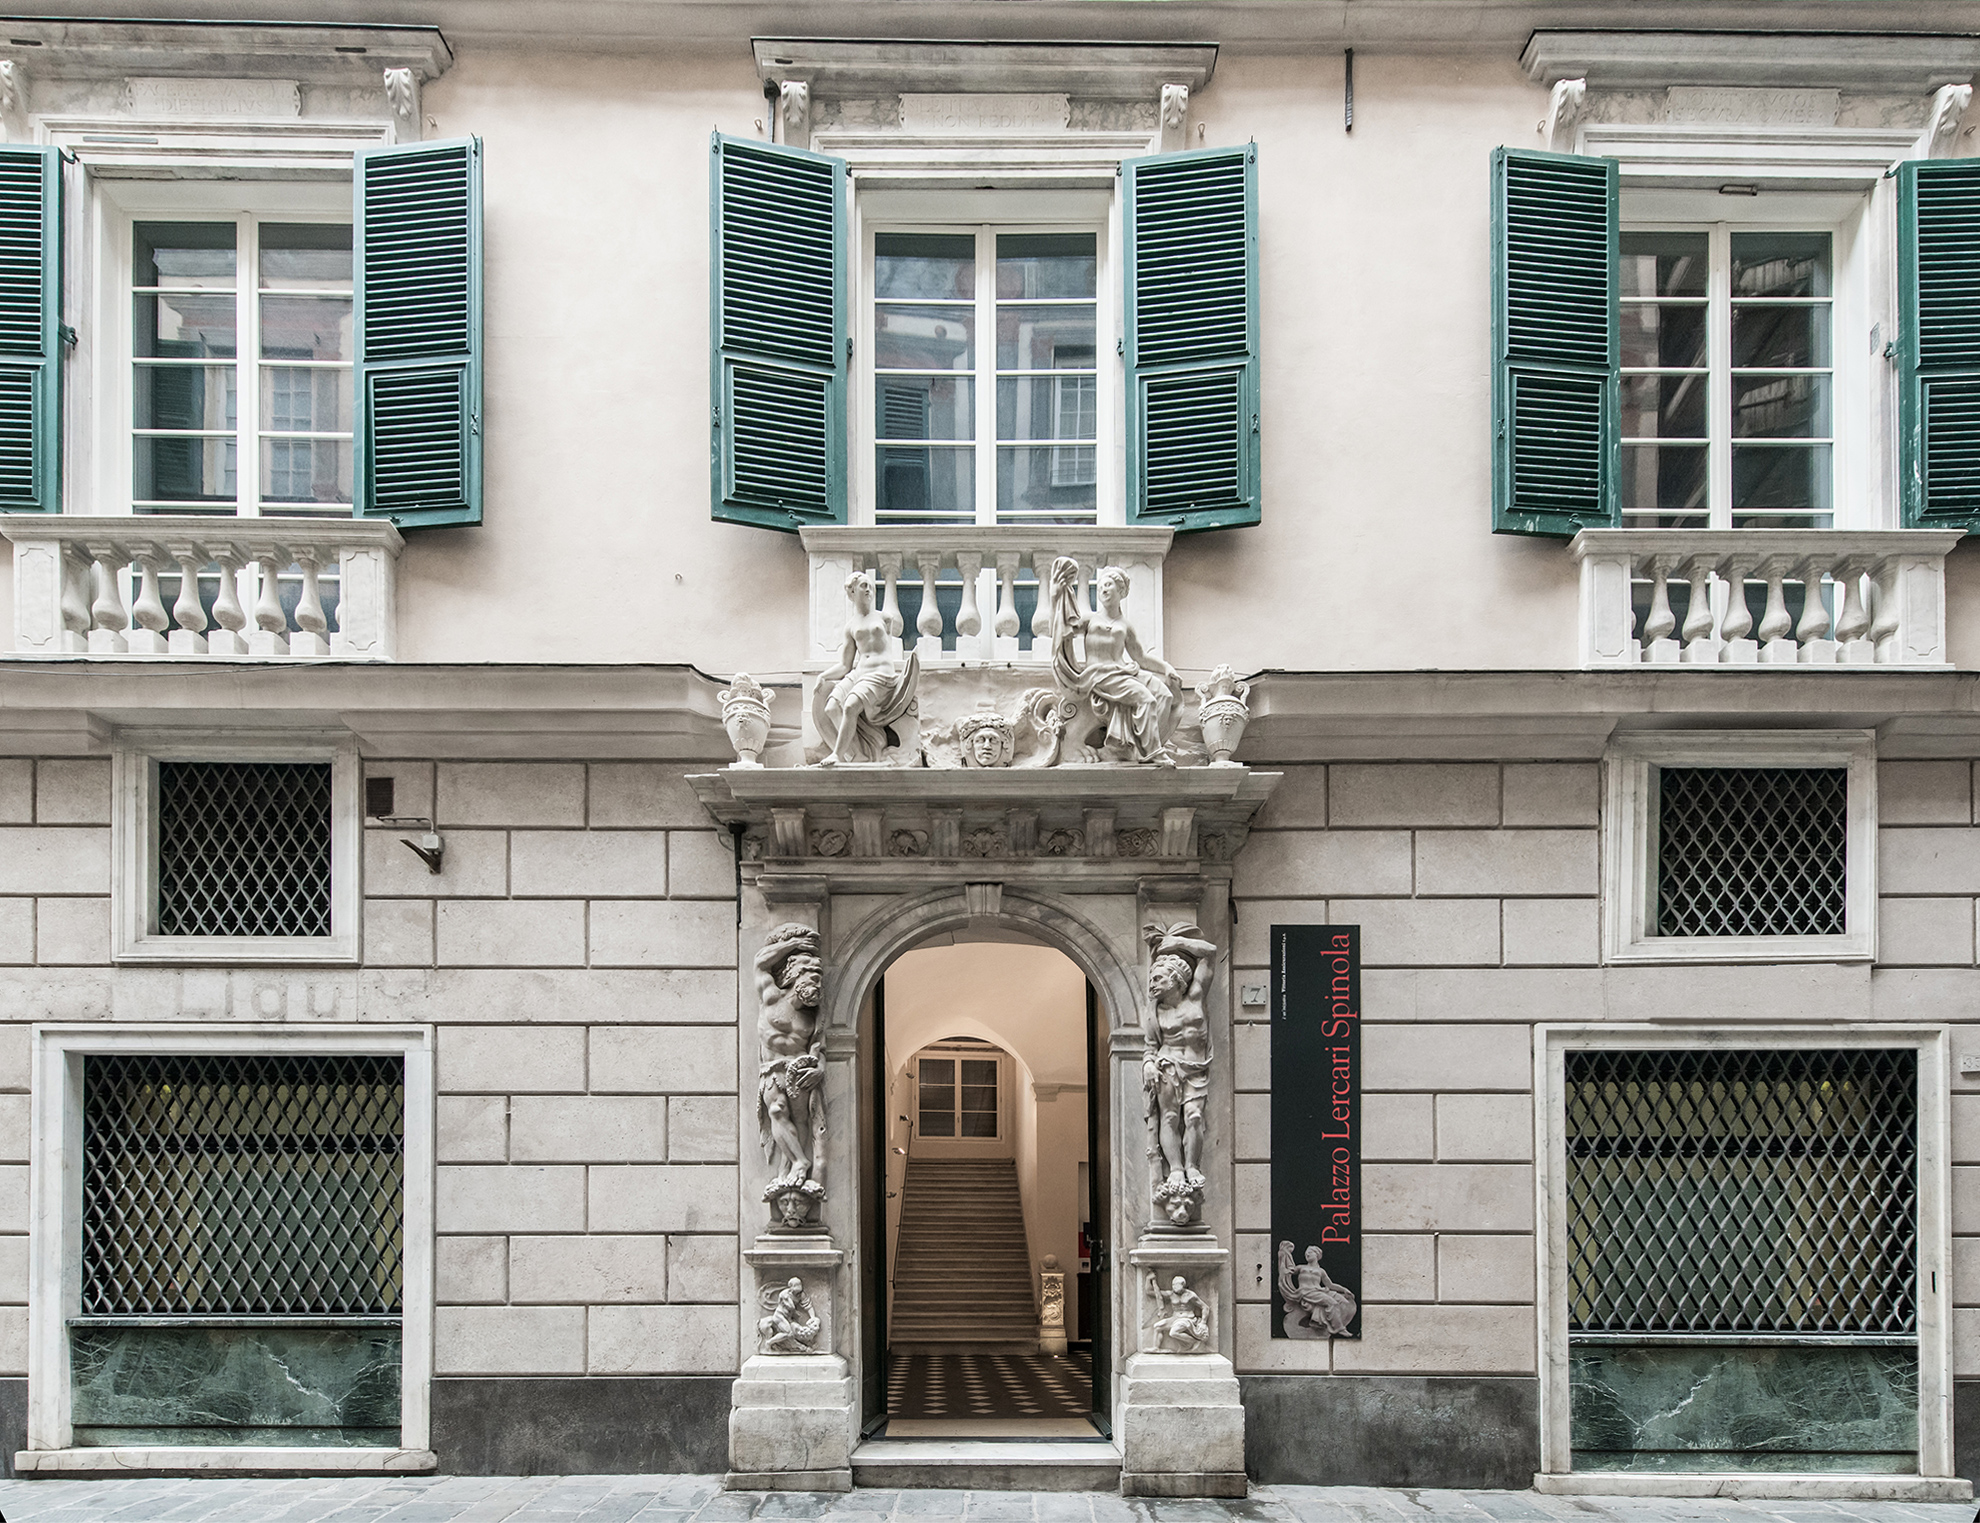 Palazzo Lercari Spinola. <br>A rarity, in the heart of Genoa.